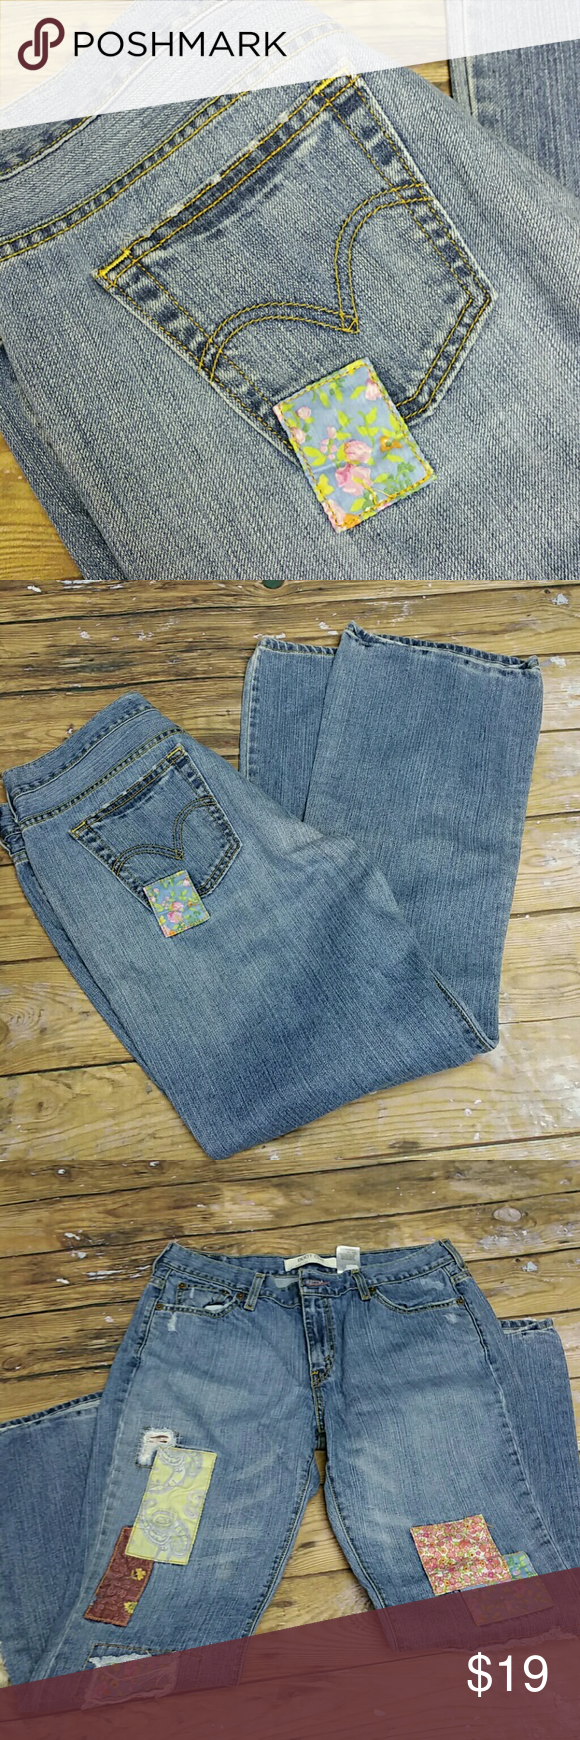 Cute Levis Super cute Levis with patches. 515 boot cut. Levi's Jeans Boot Cut